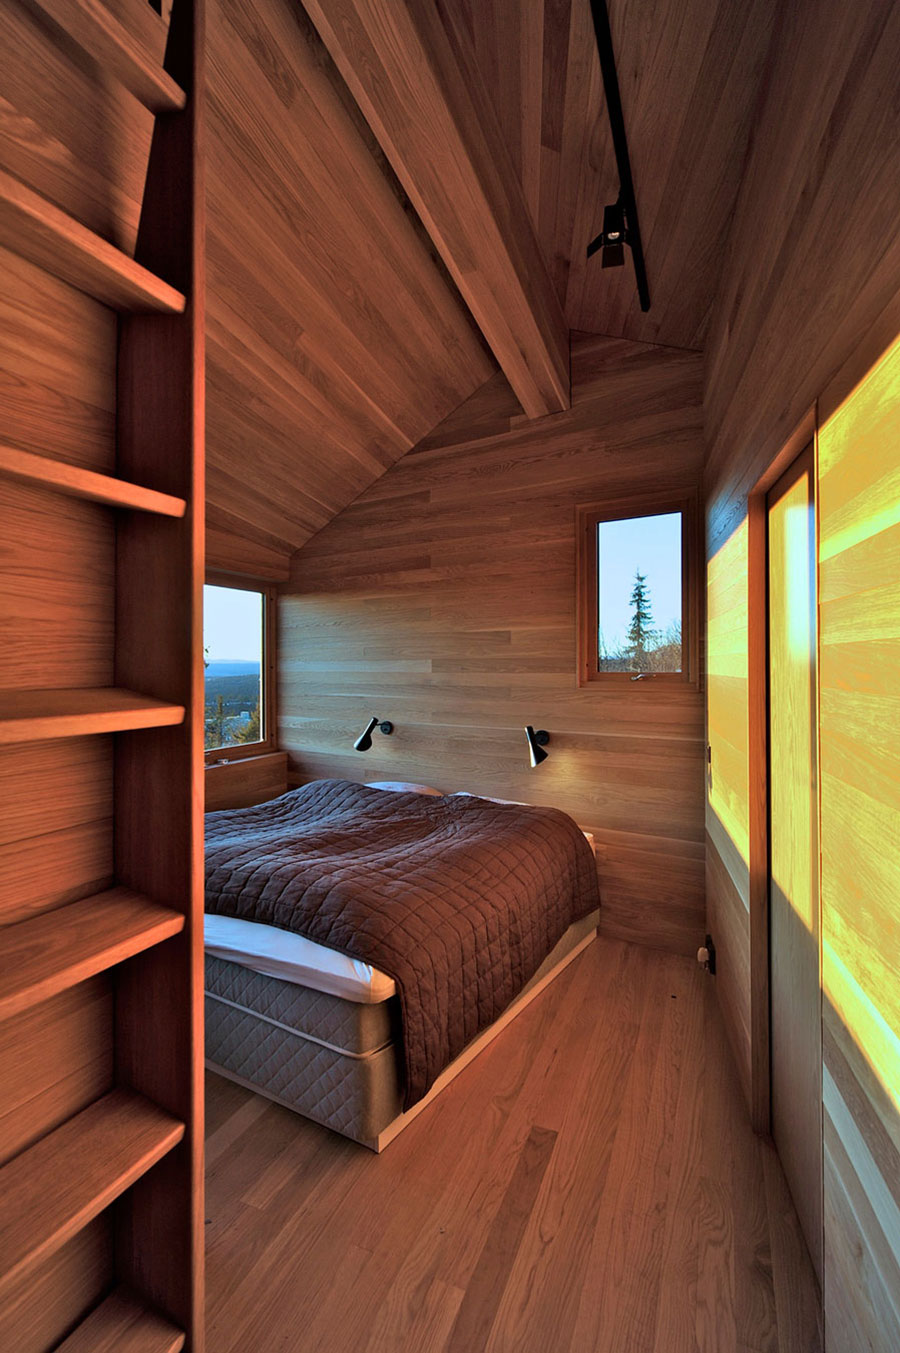 Bedroom, Ski Home in Kvitfjell, Norway: Twisted Cabin